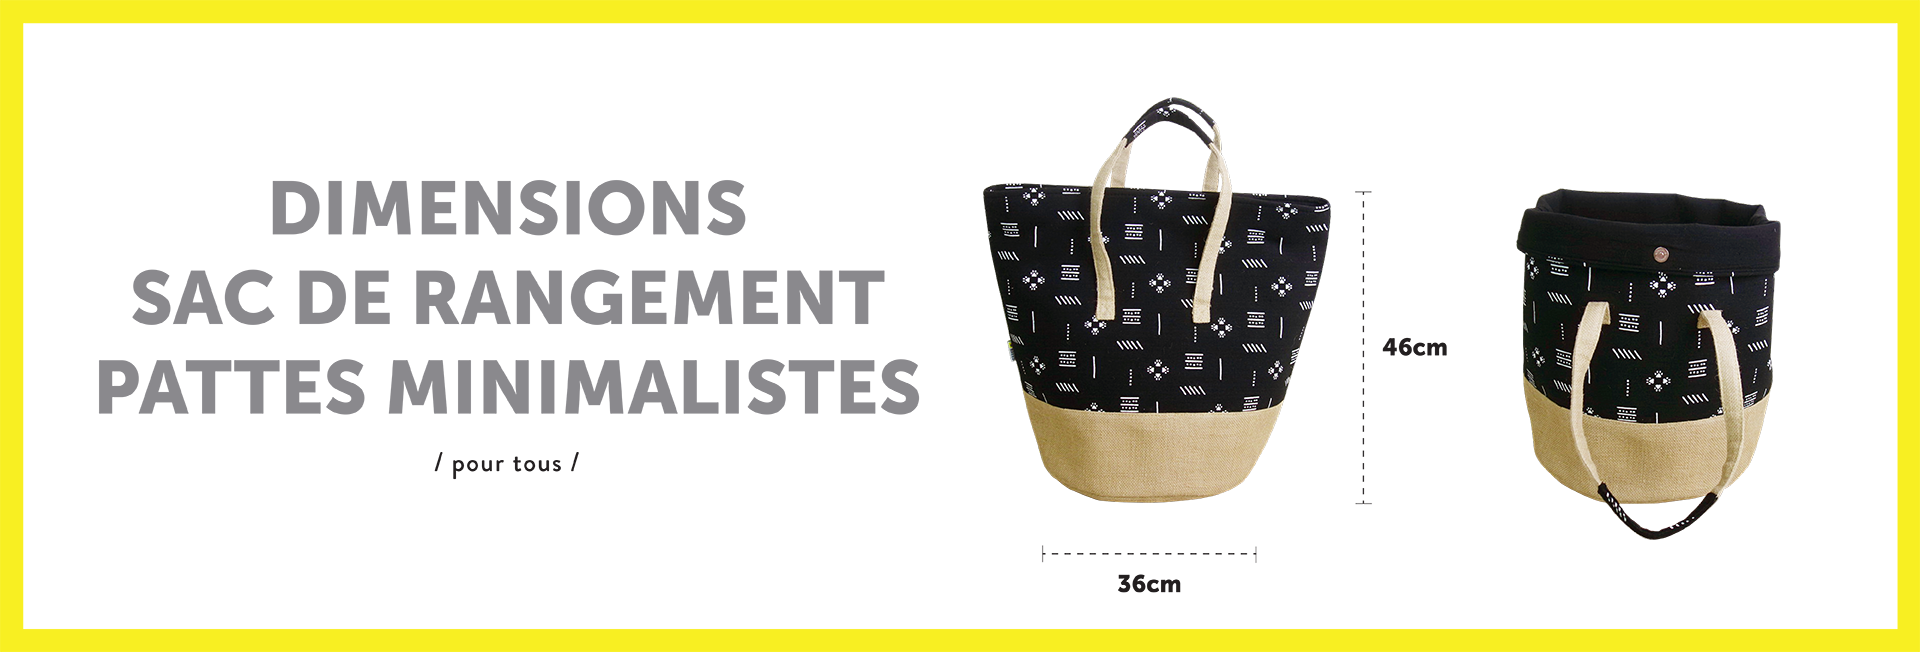 dimensions-goodie-bag-minimalist-paws-for-dogs-french